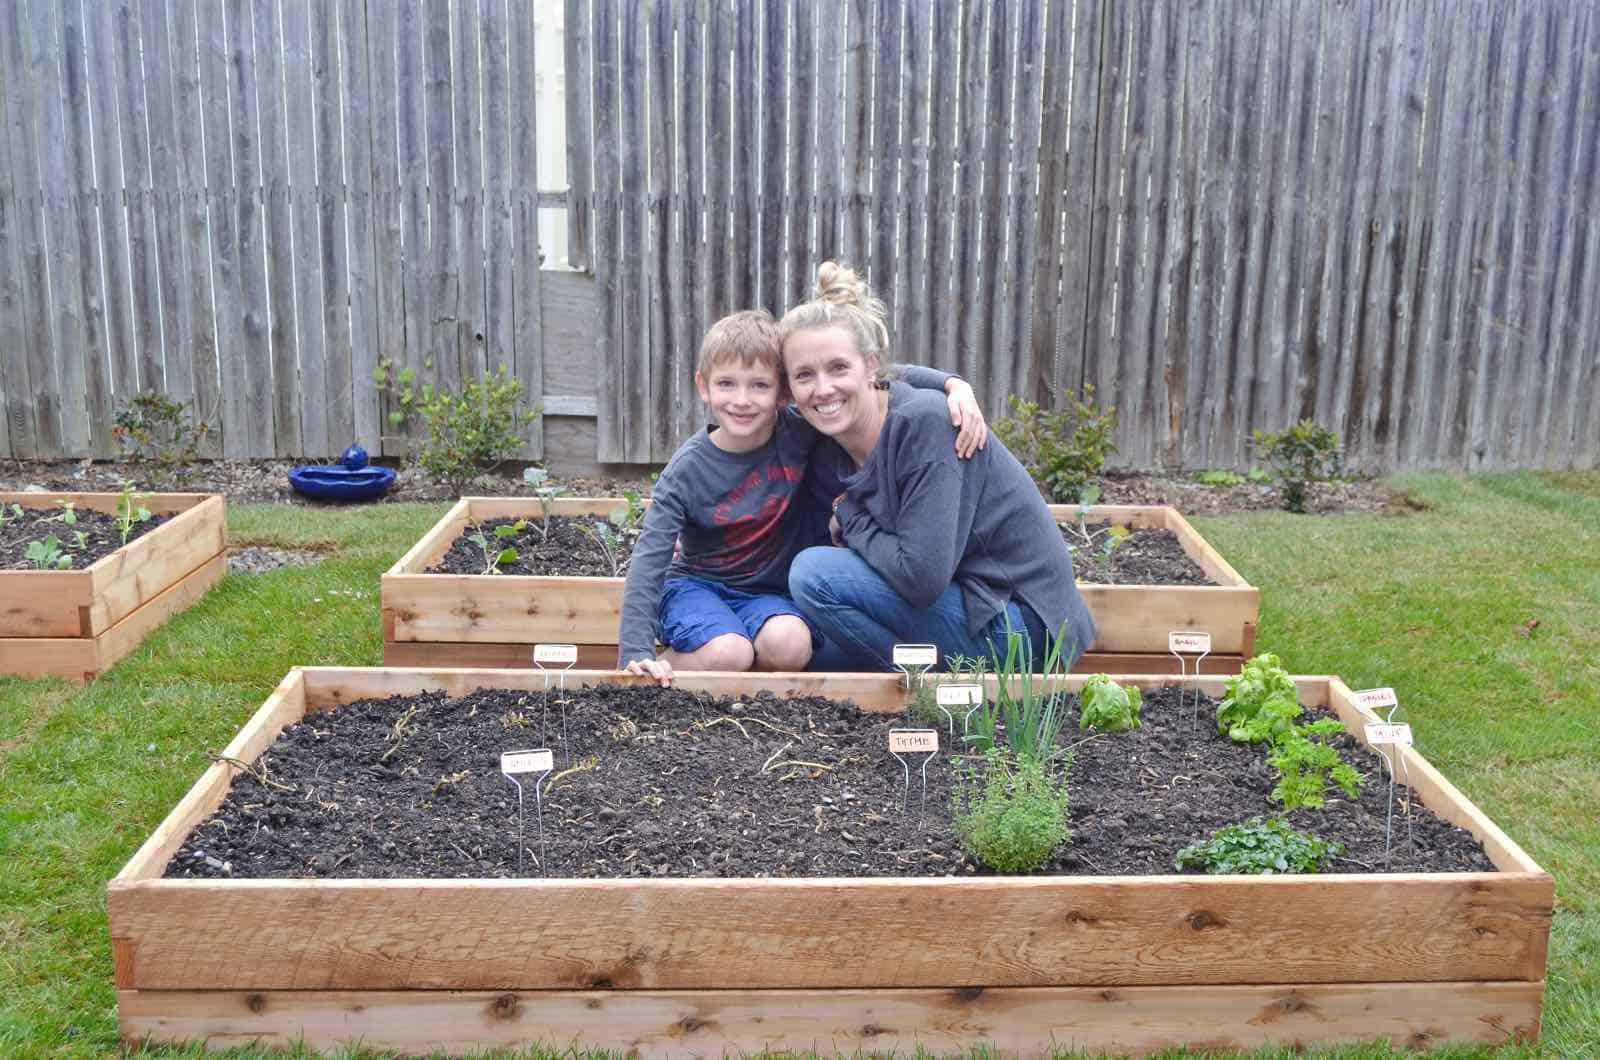 How to design a cool and functional raised garden bed.